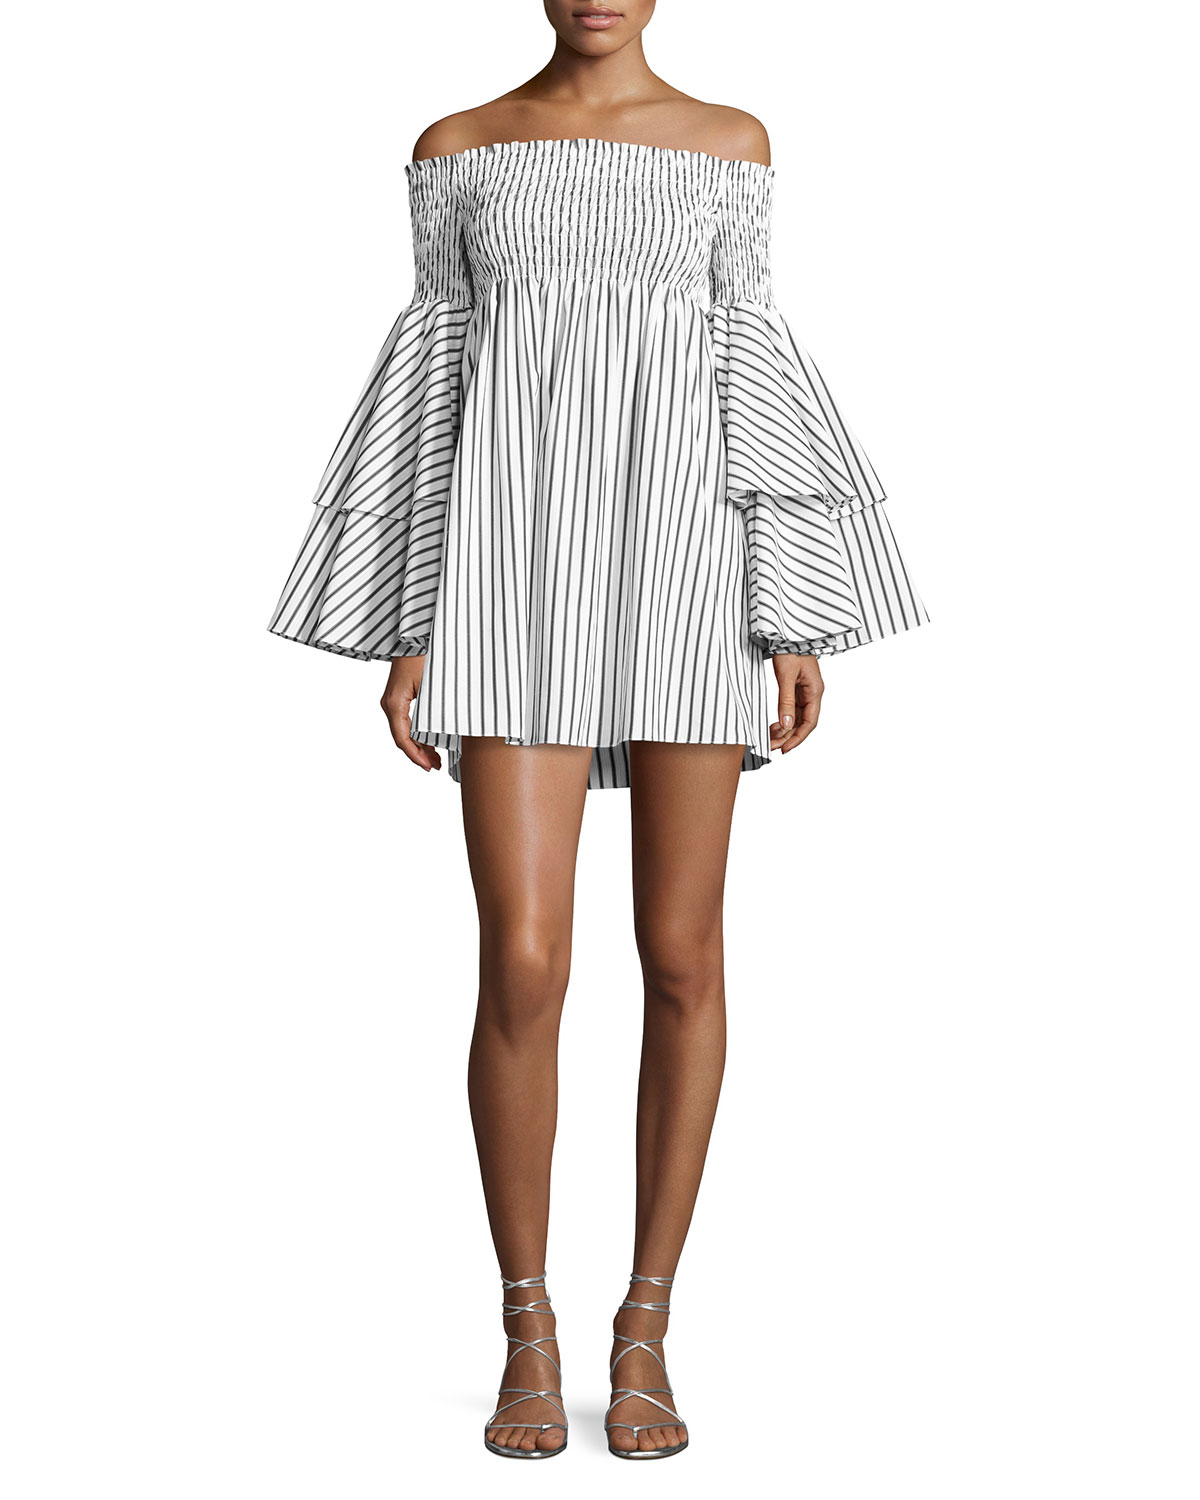 Striped stretch cotton dress Caroline Constas Cheap Sale Sast Clearance Visit New 8g5im